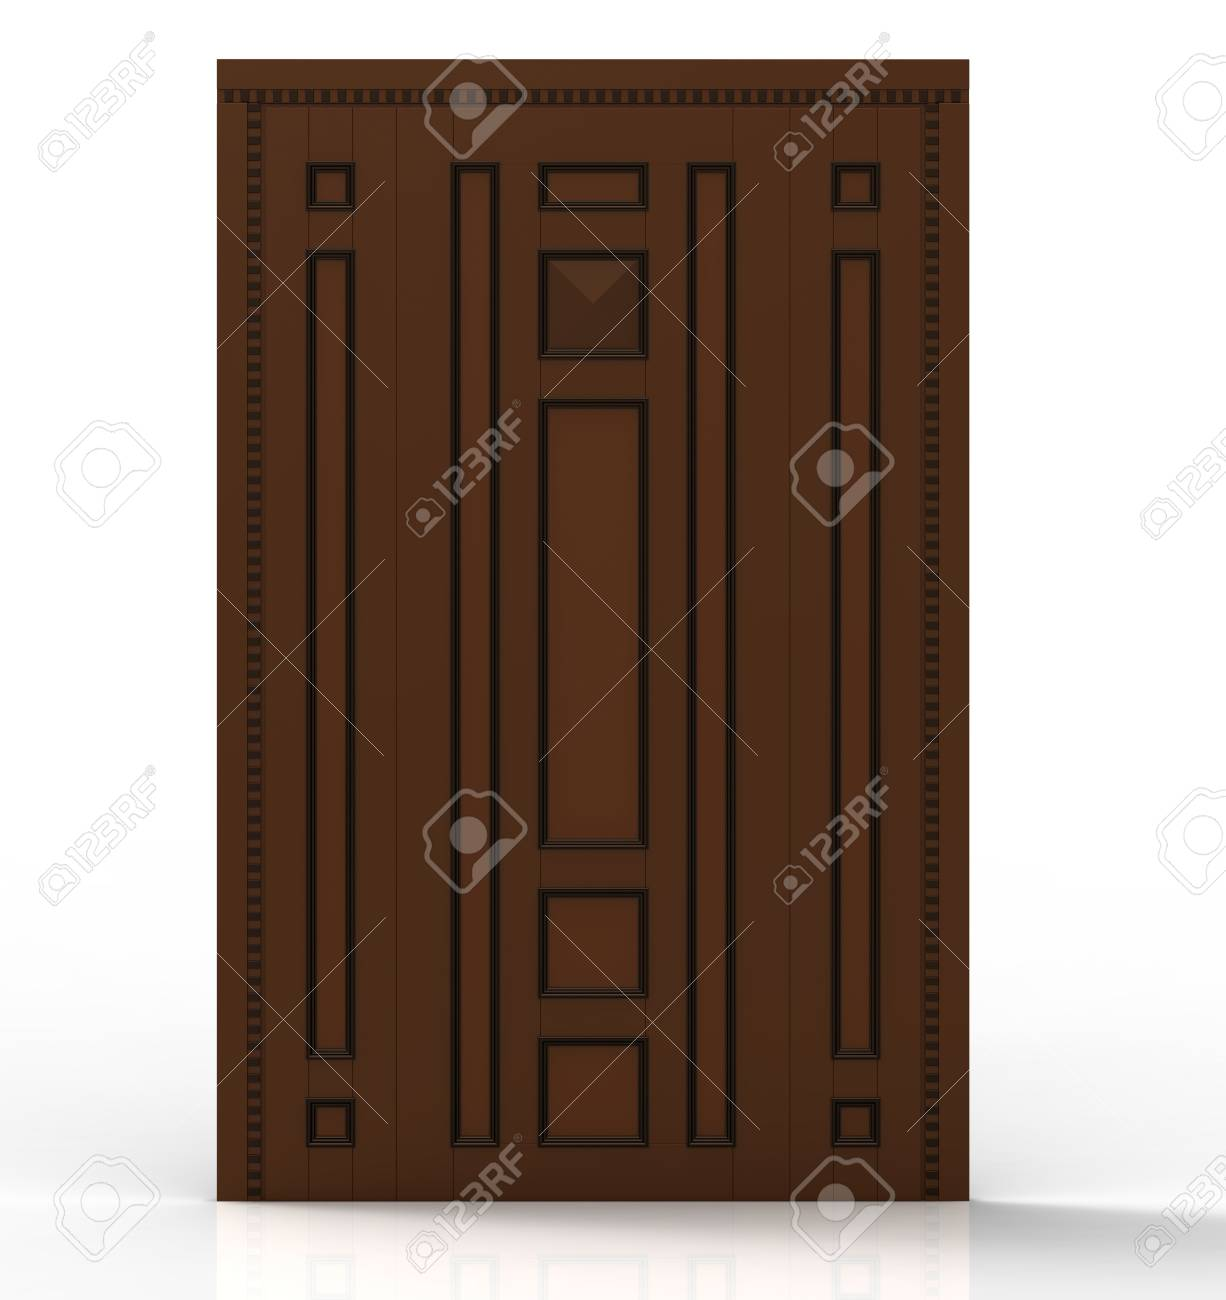 Entrance doors on a white background Stock Photo - 9824233